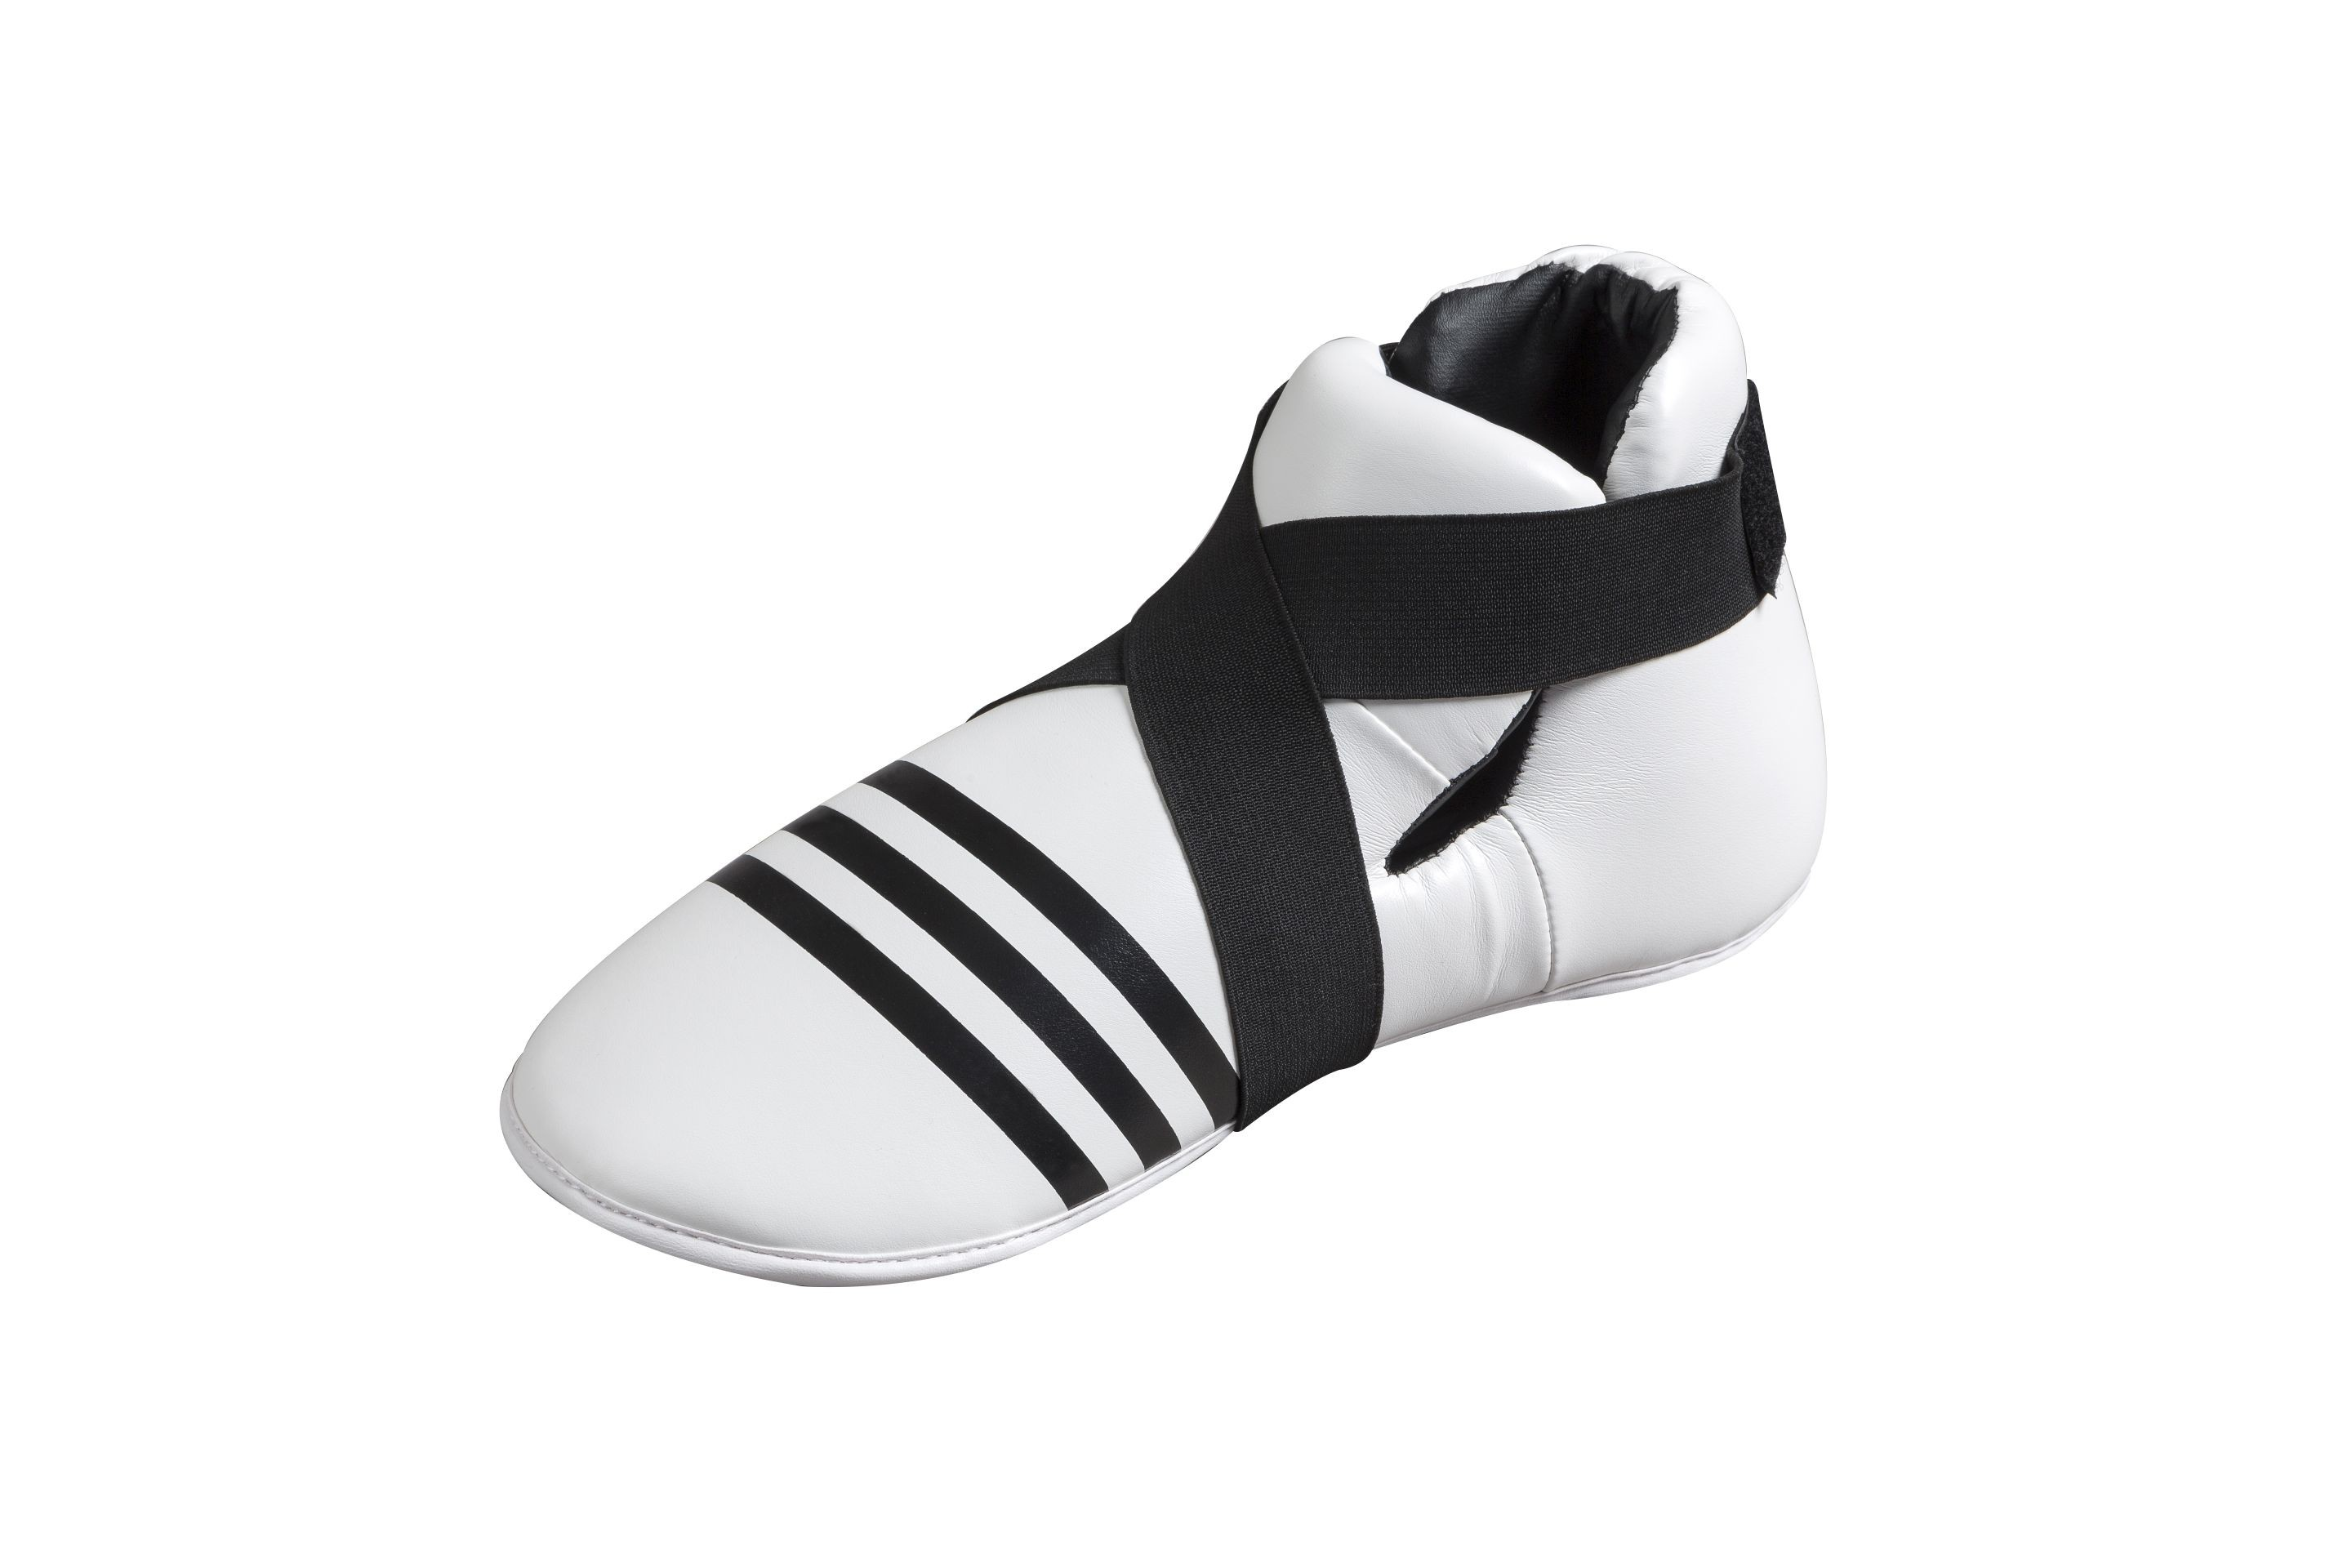 Adidas SUPER SAFETY KICKS